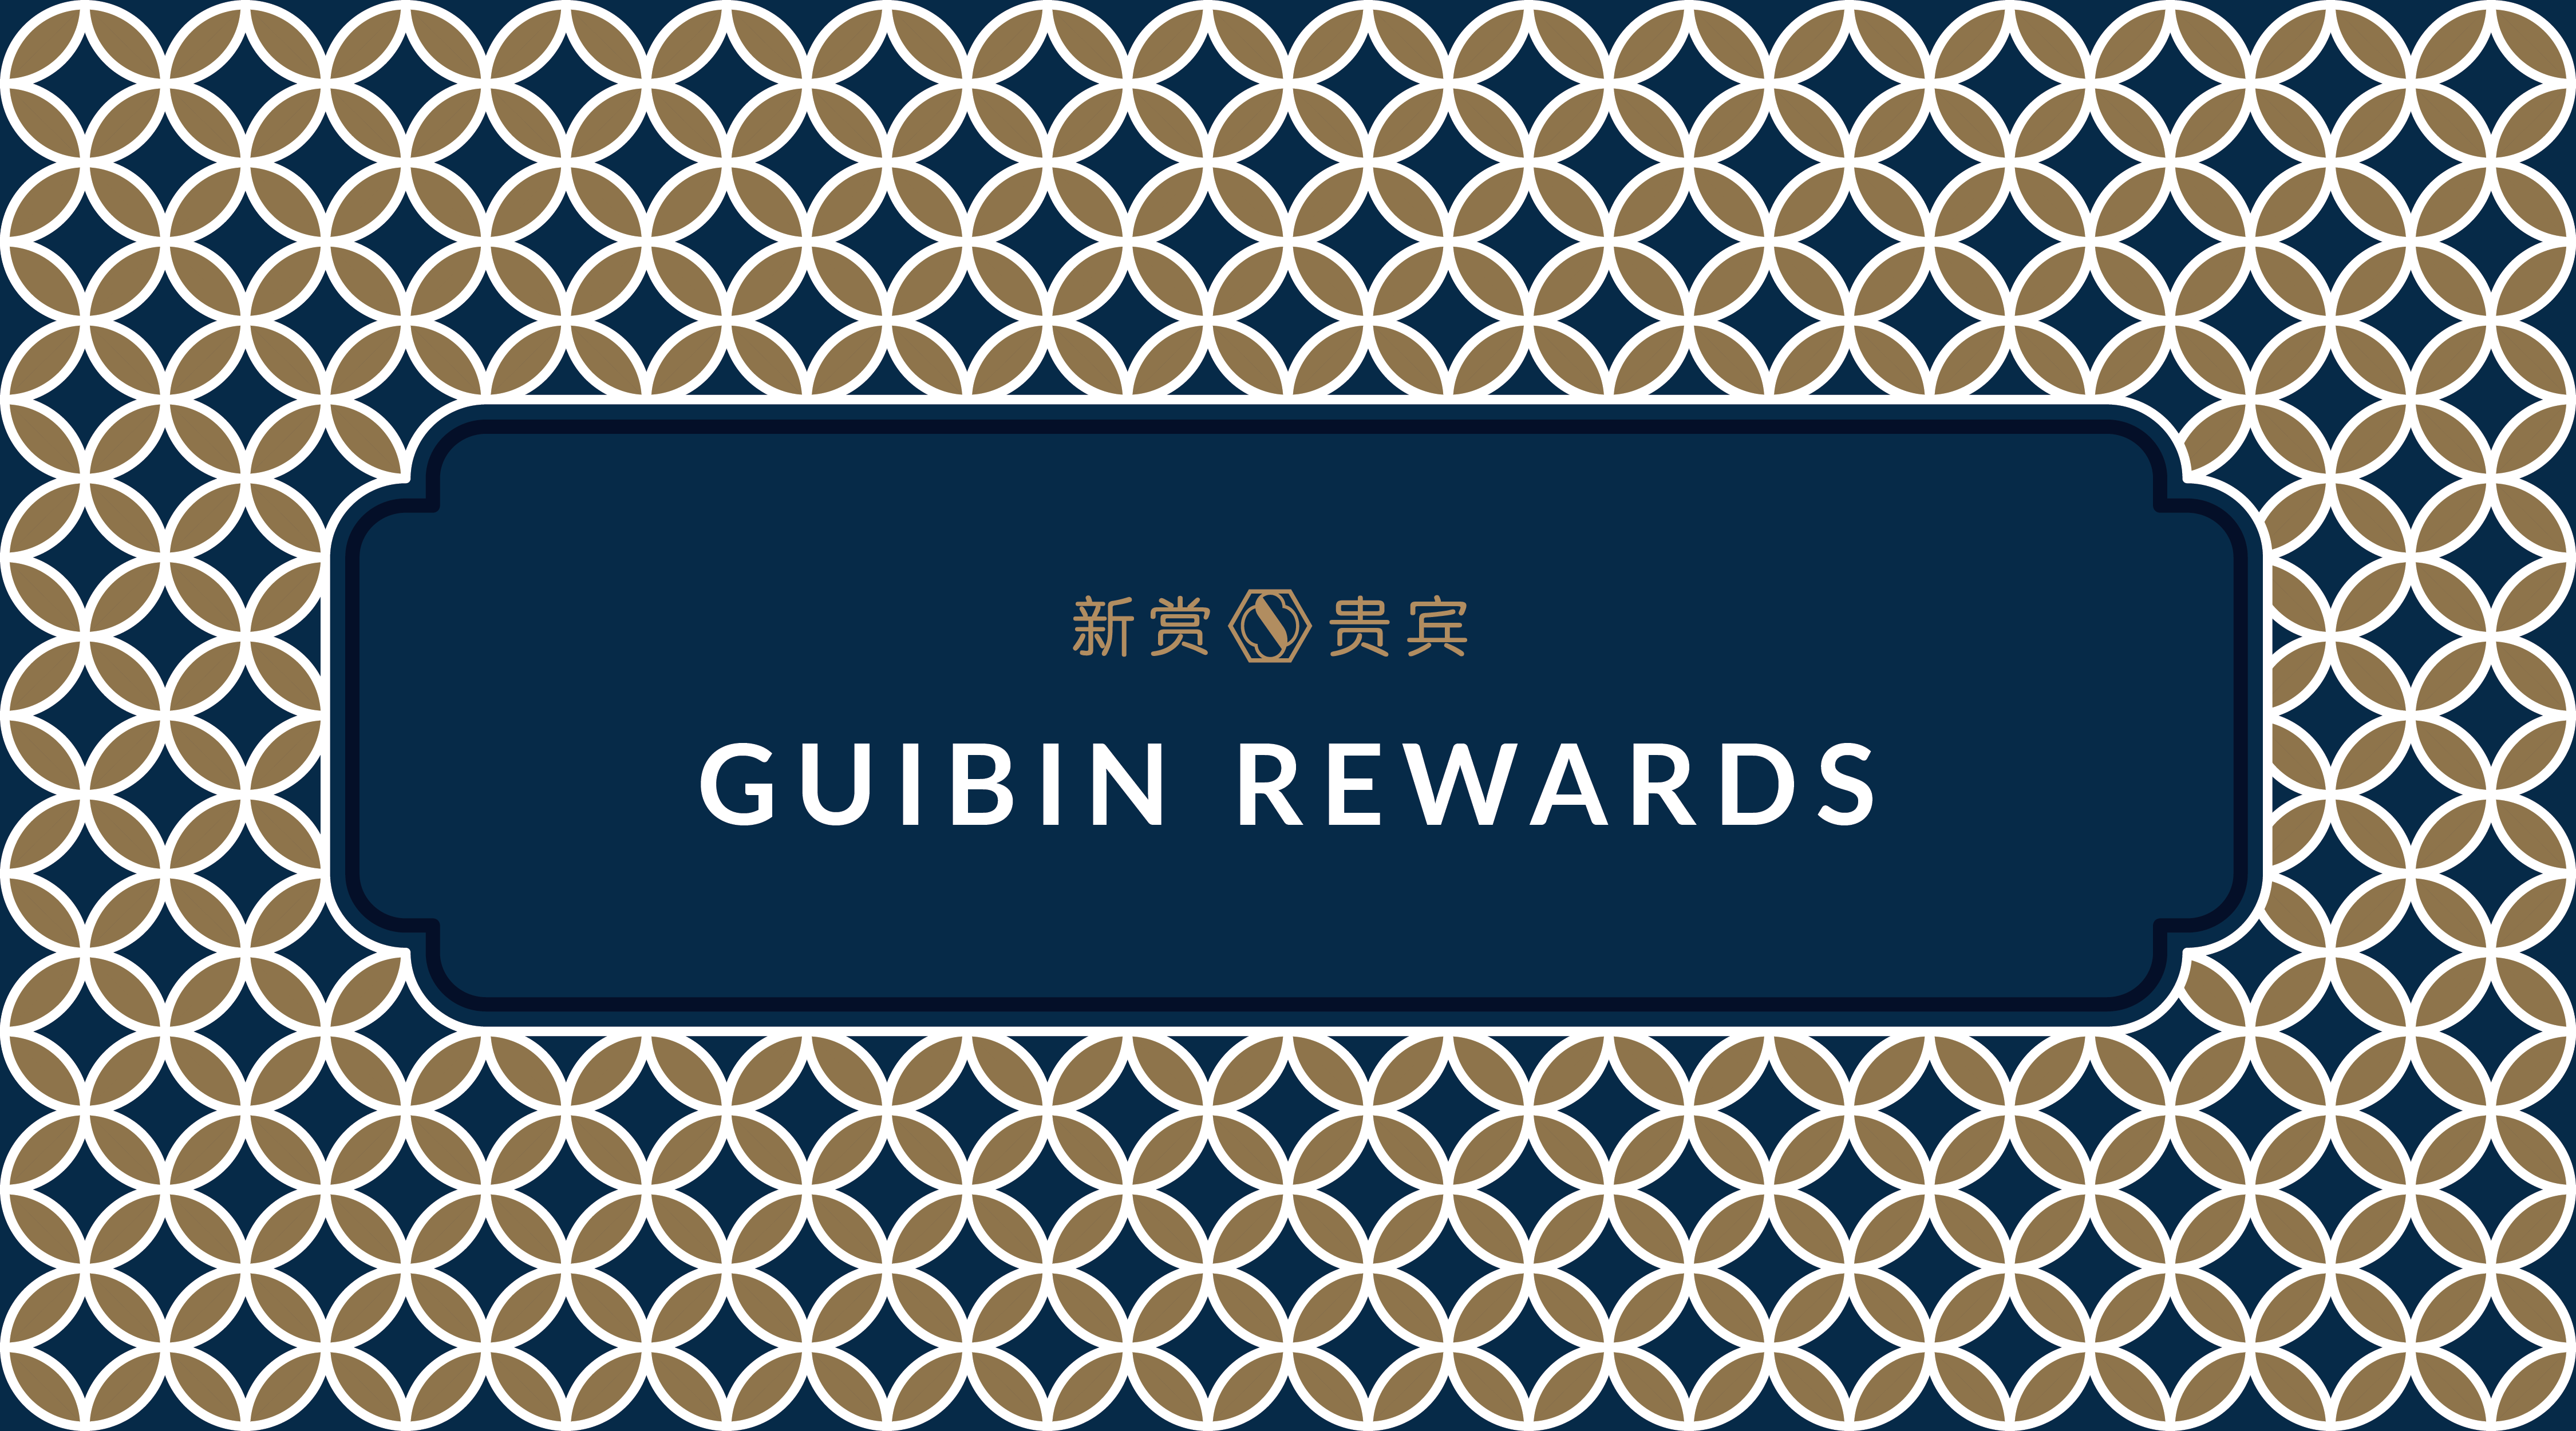 GUIBIN Rewards programme